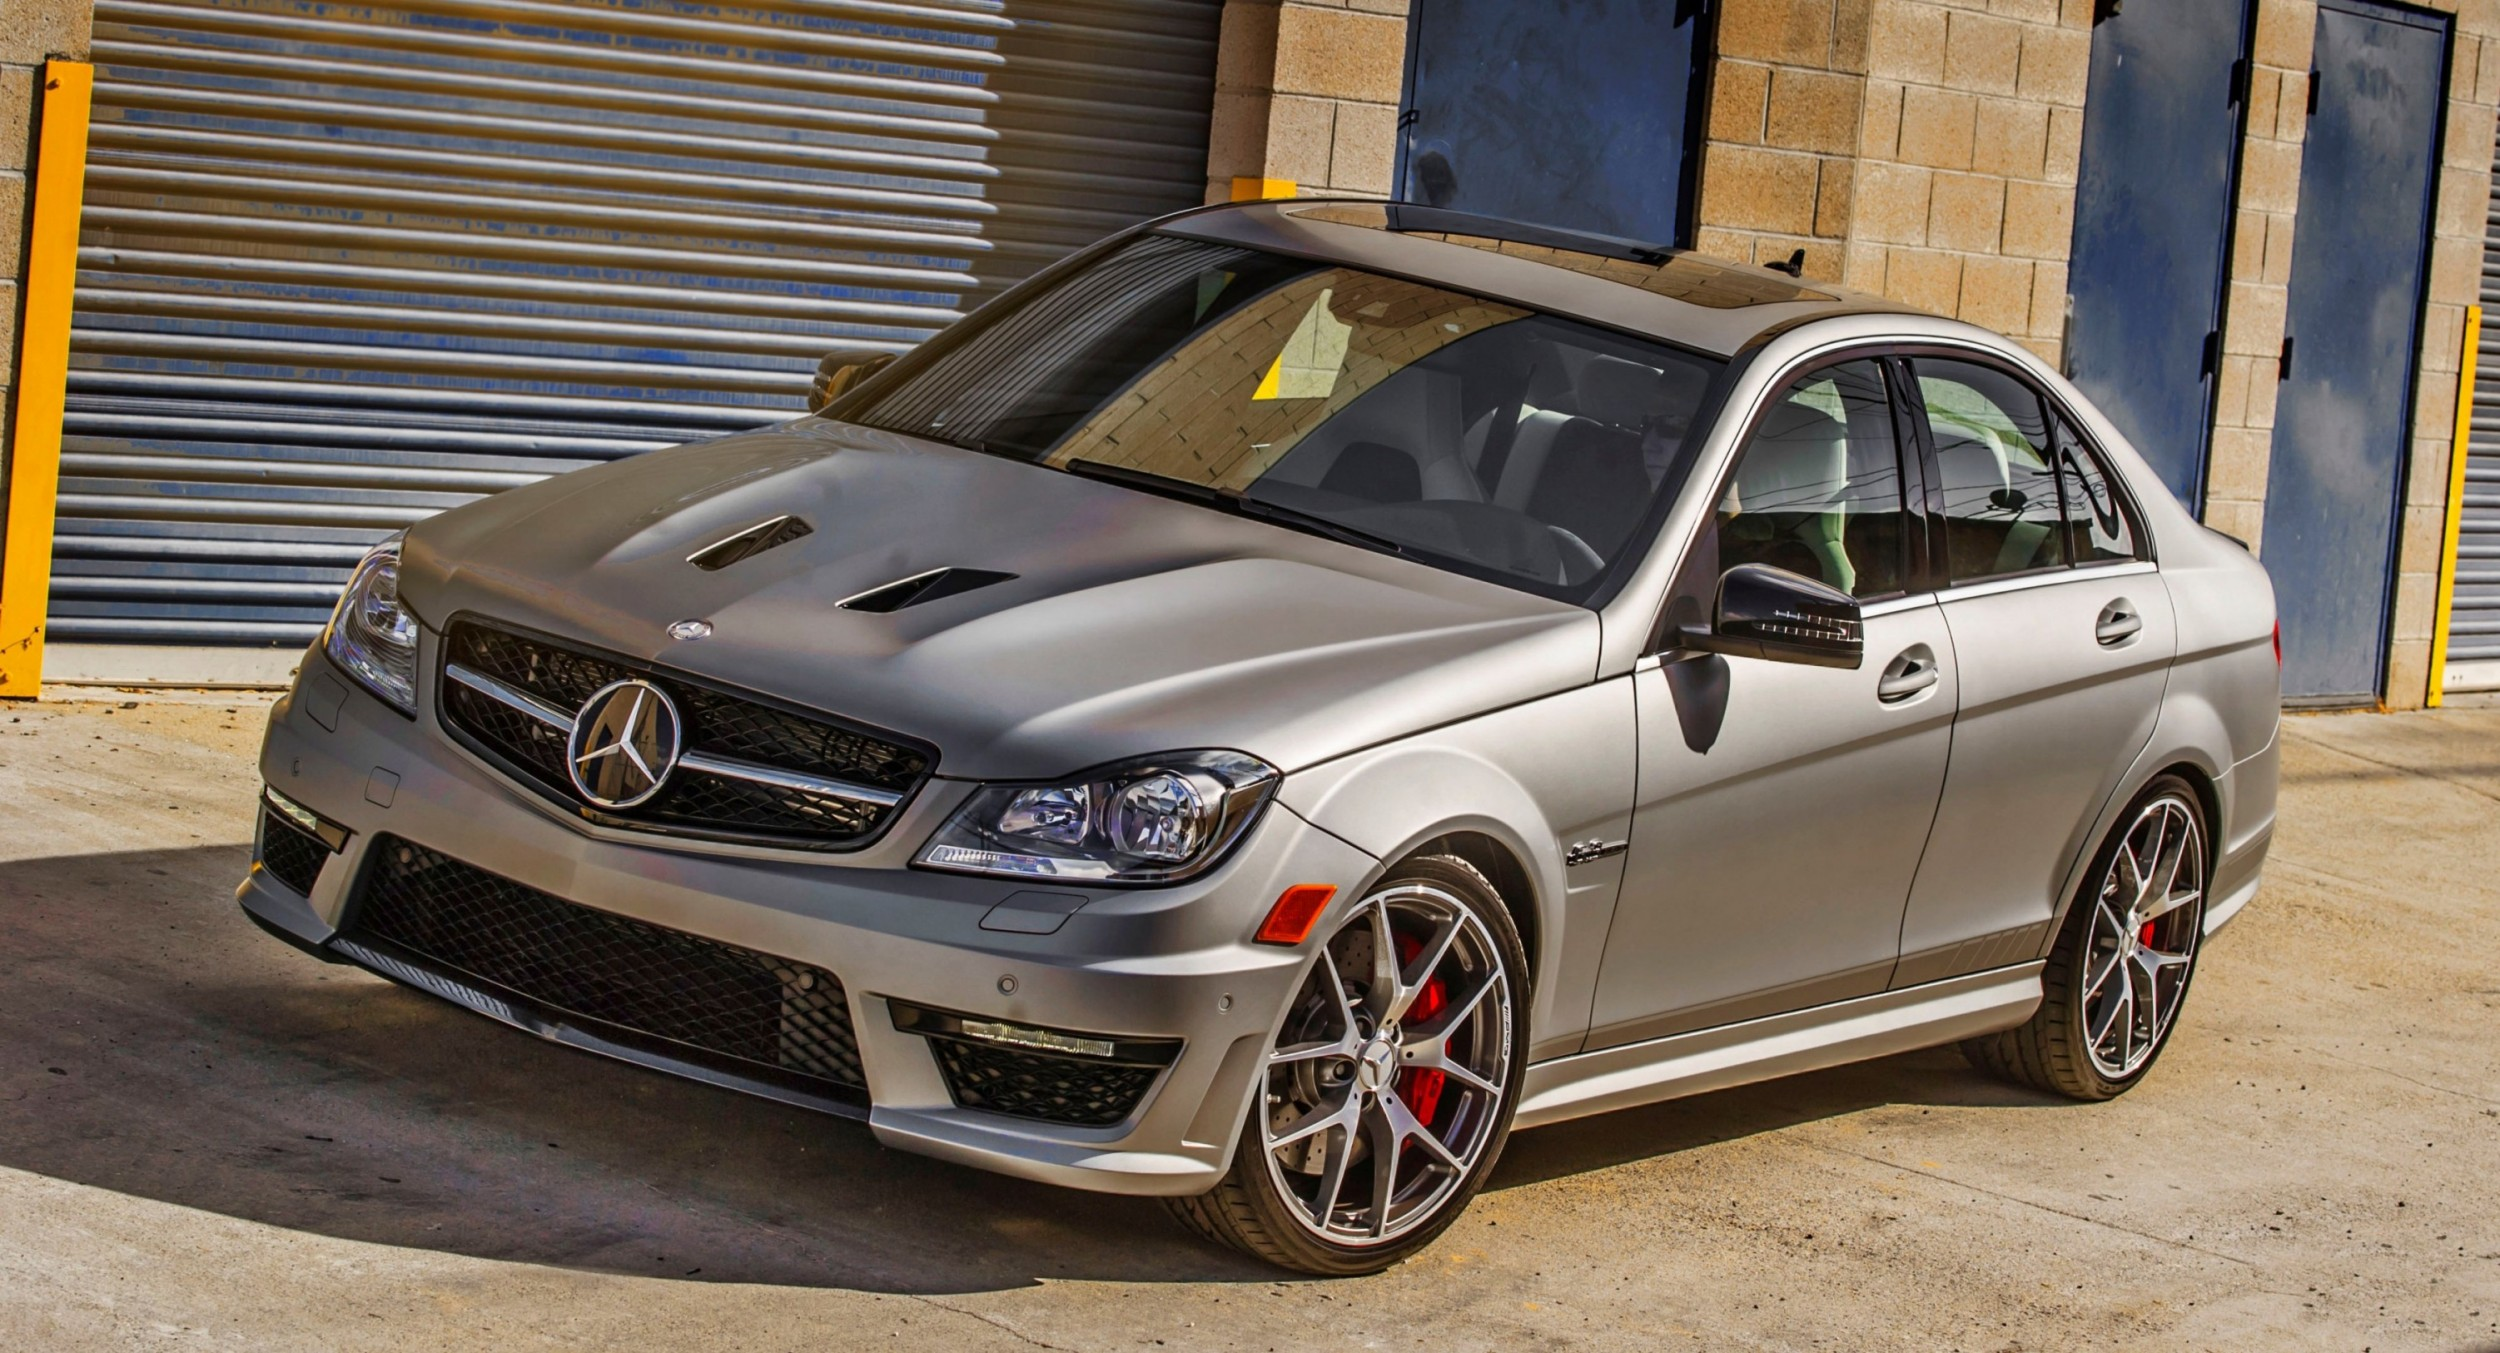 2014 c63 amg edition 507 sedan and coupe going out with v8 for Mercedes benz c63 2014